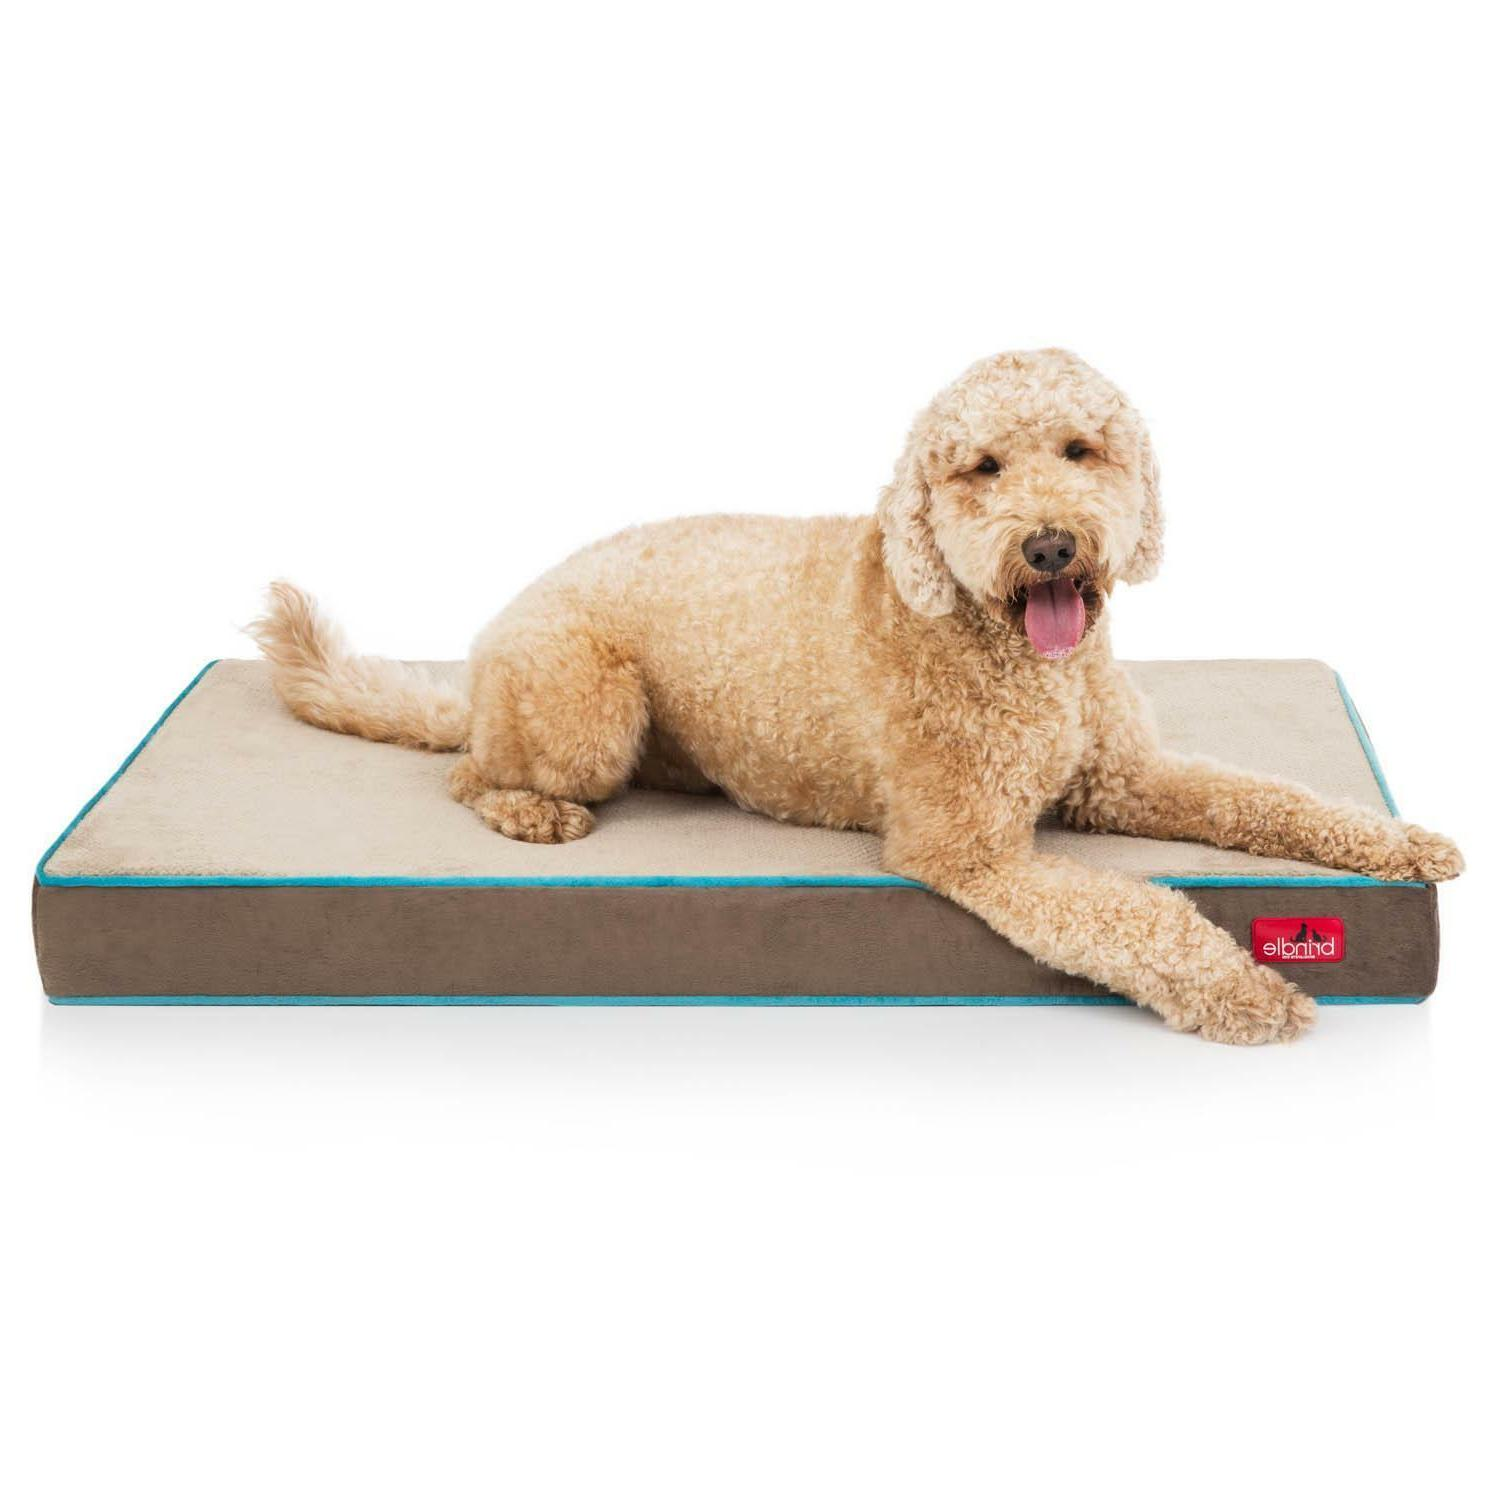 4 inch memory foam dog bed